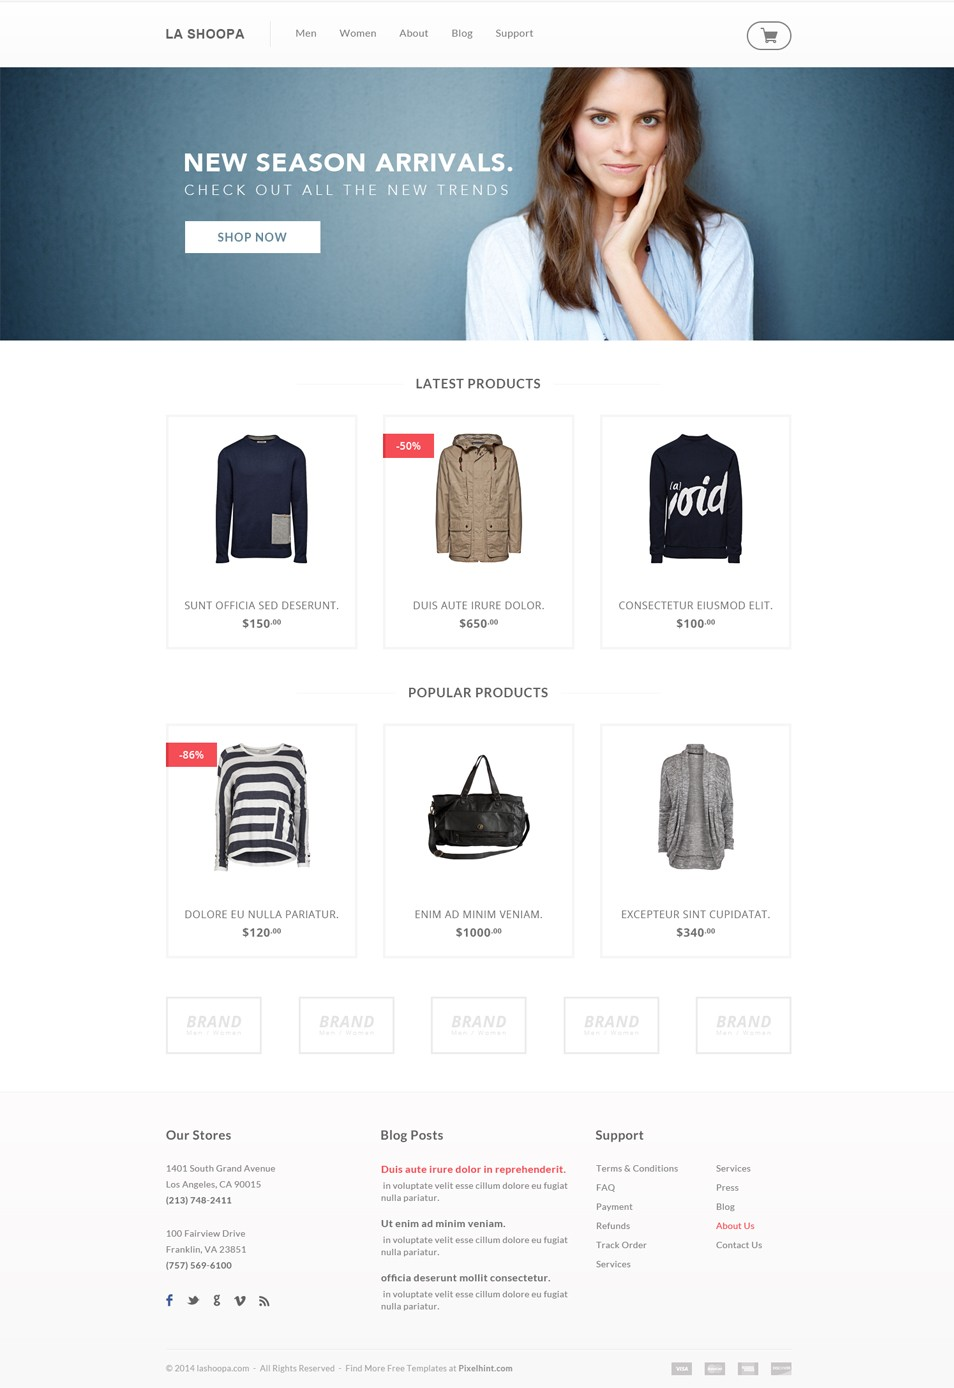 A fashion website - Here Is A Clean And Simple Free Psd Ecommerce Design Website Template This Is An Ecommerce Template For A Fashion Focused Storefront